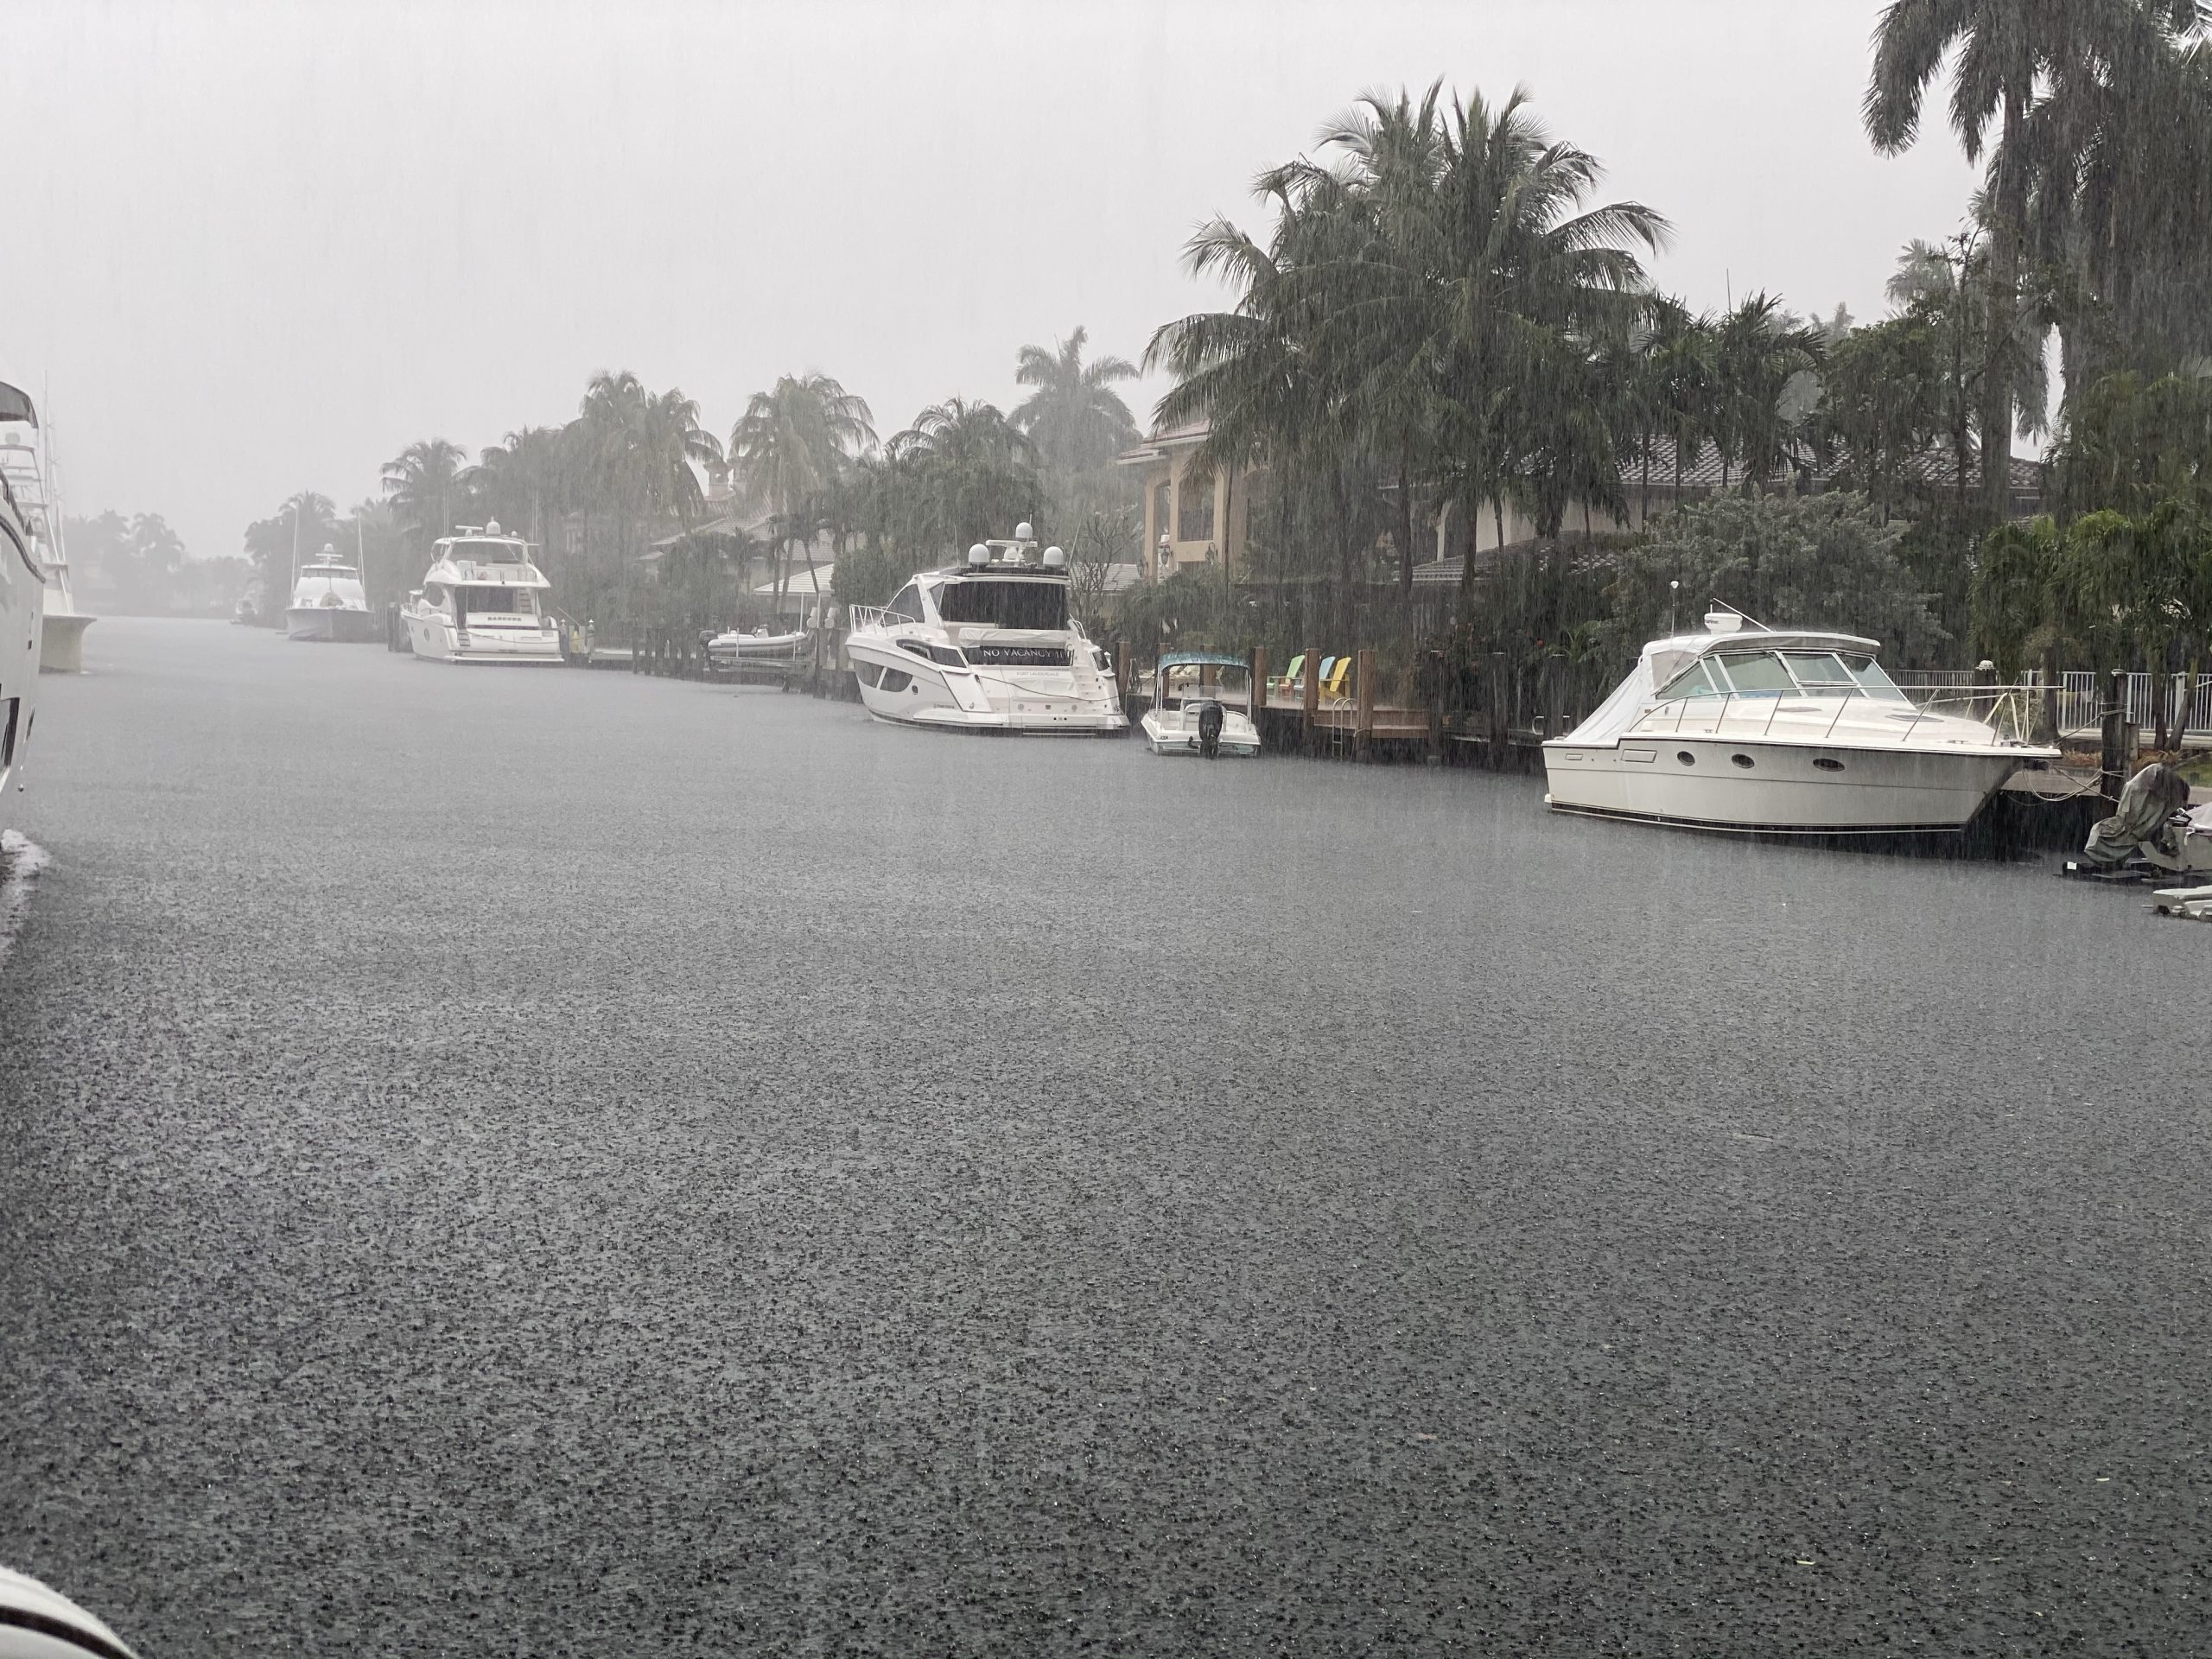 Come to Fort Lauderdale, enjoy the sun, the warmth